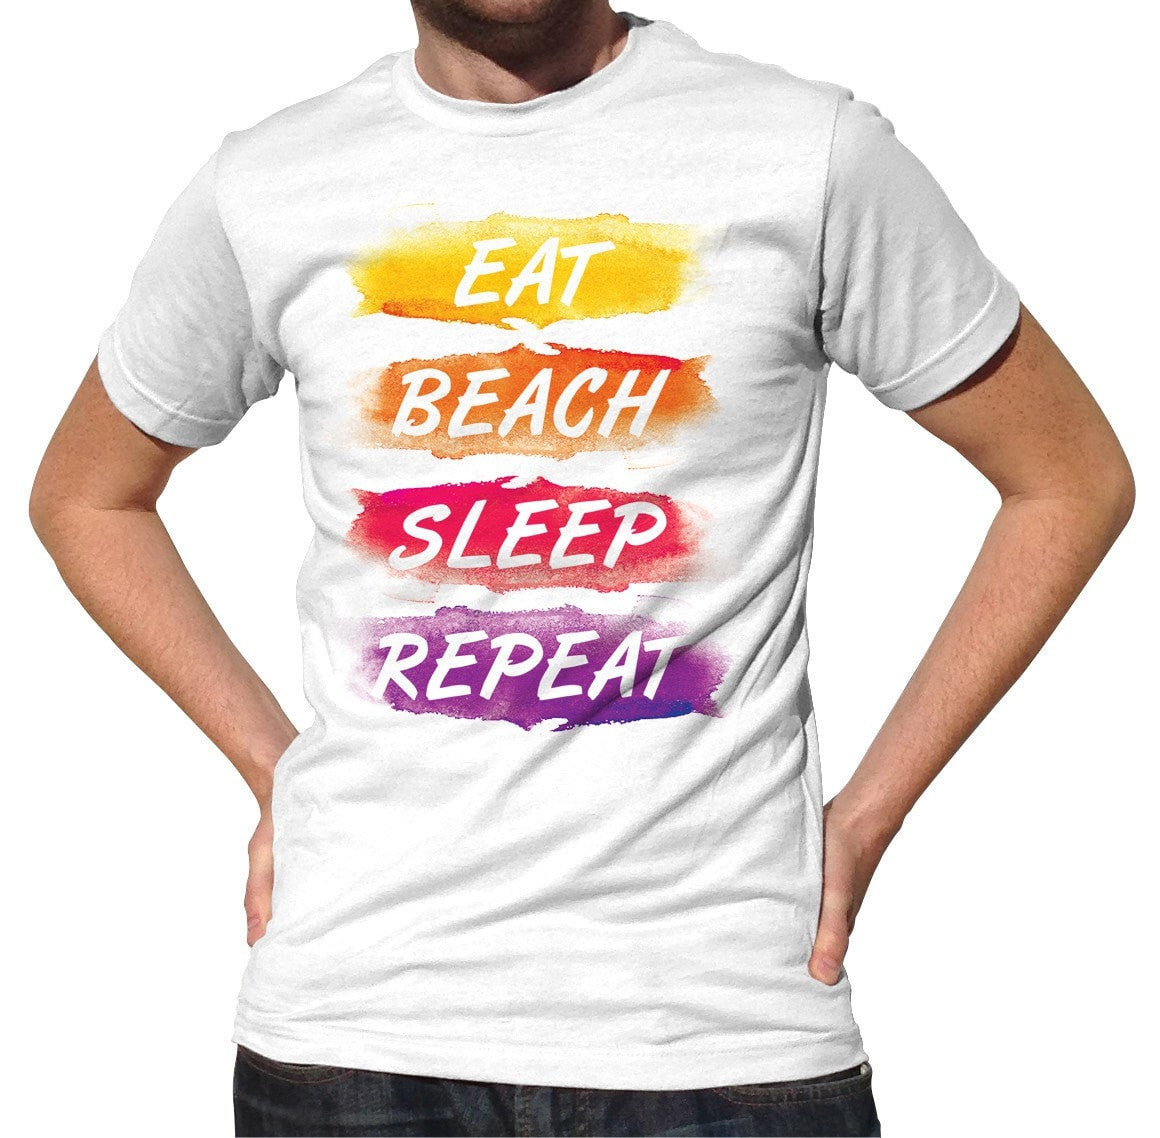 Men's Eat Beach Sleep Repeat T-Shirt